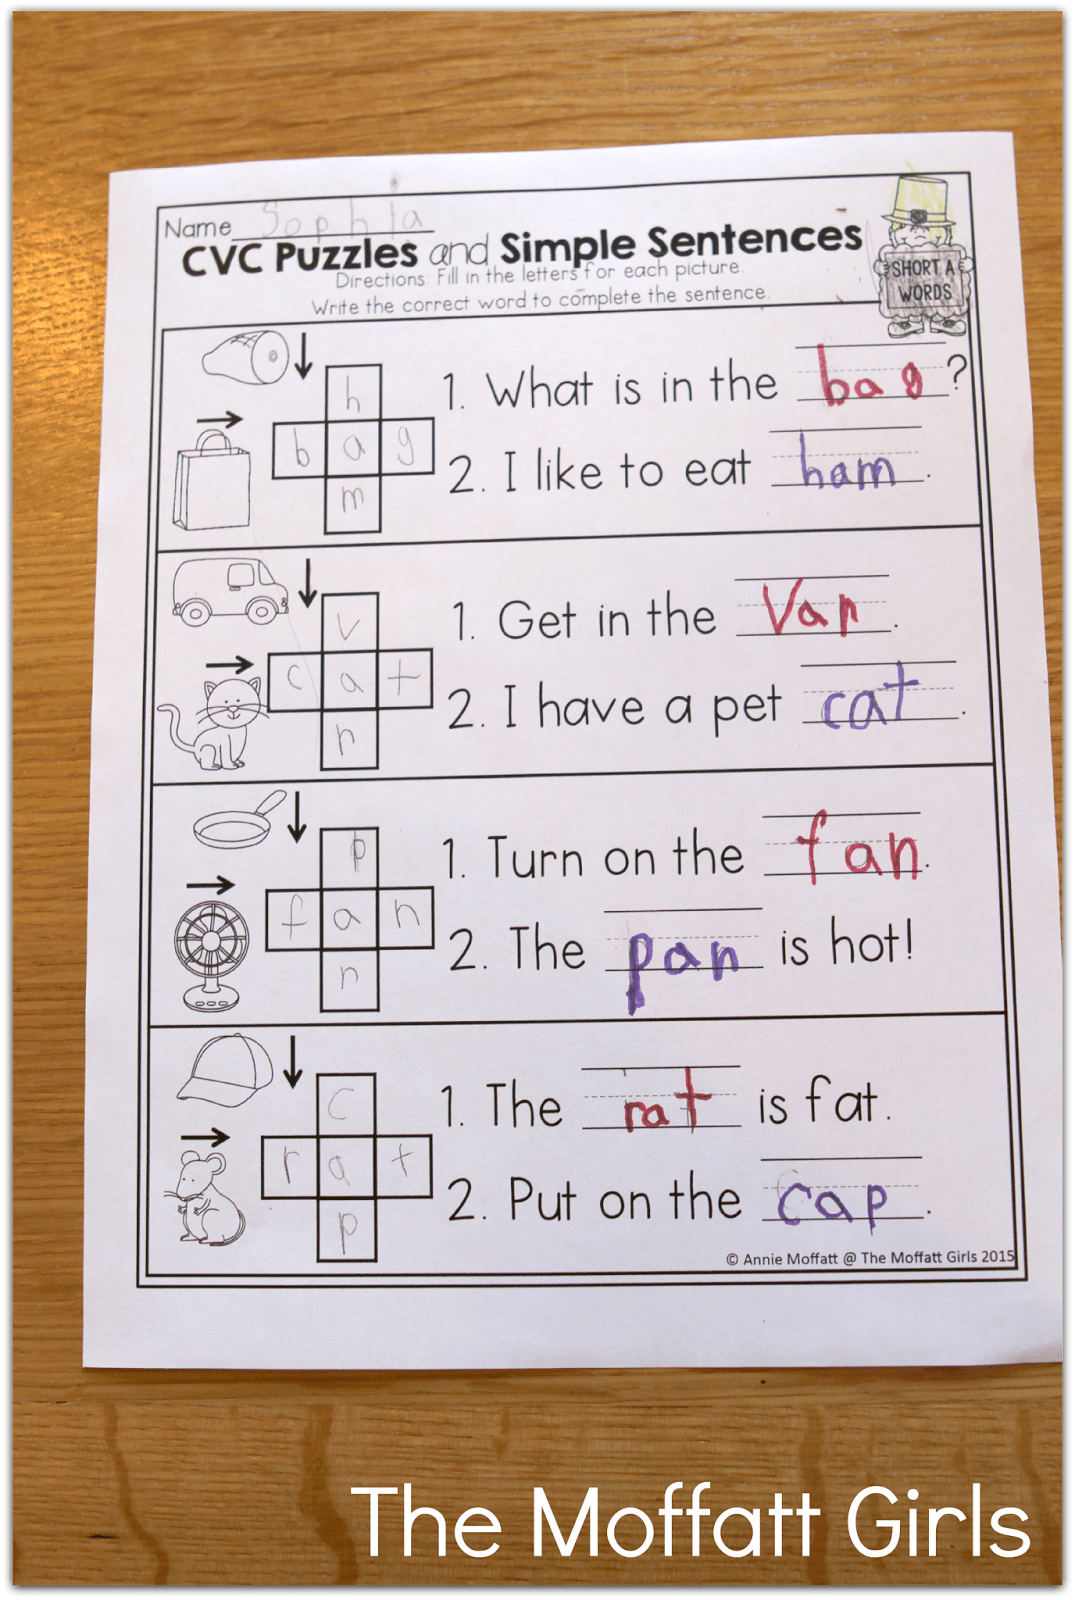 Simple Crossword Puzzles With Cvc Words For Beginning